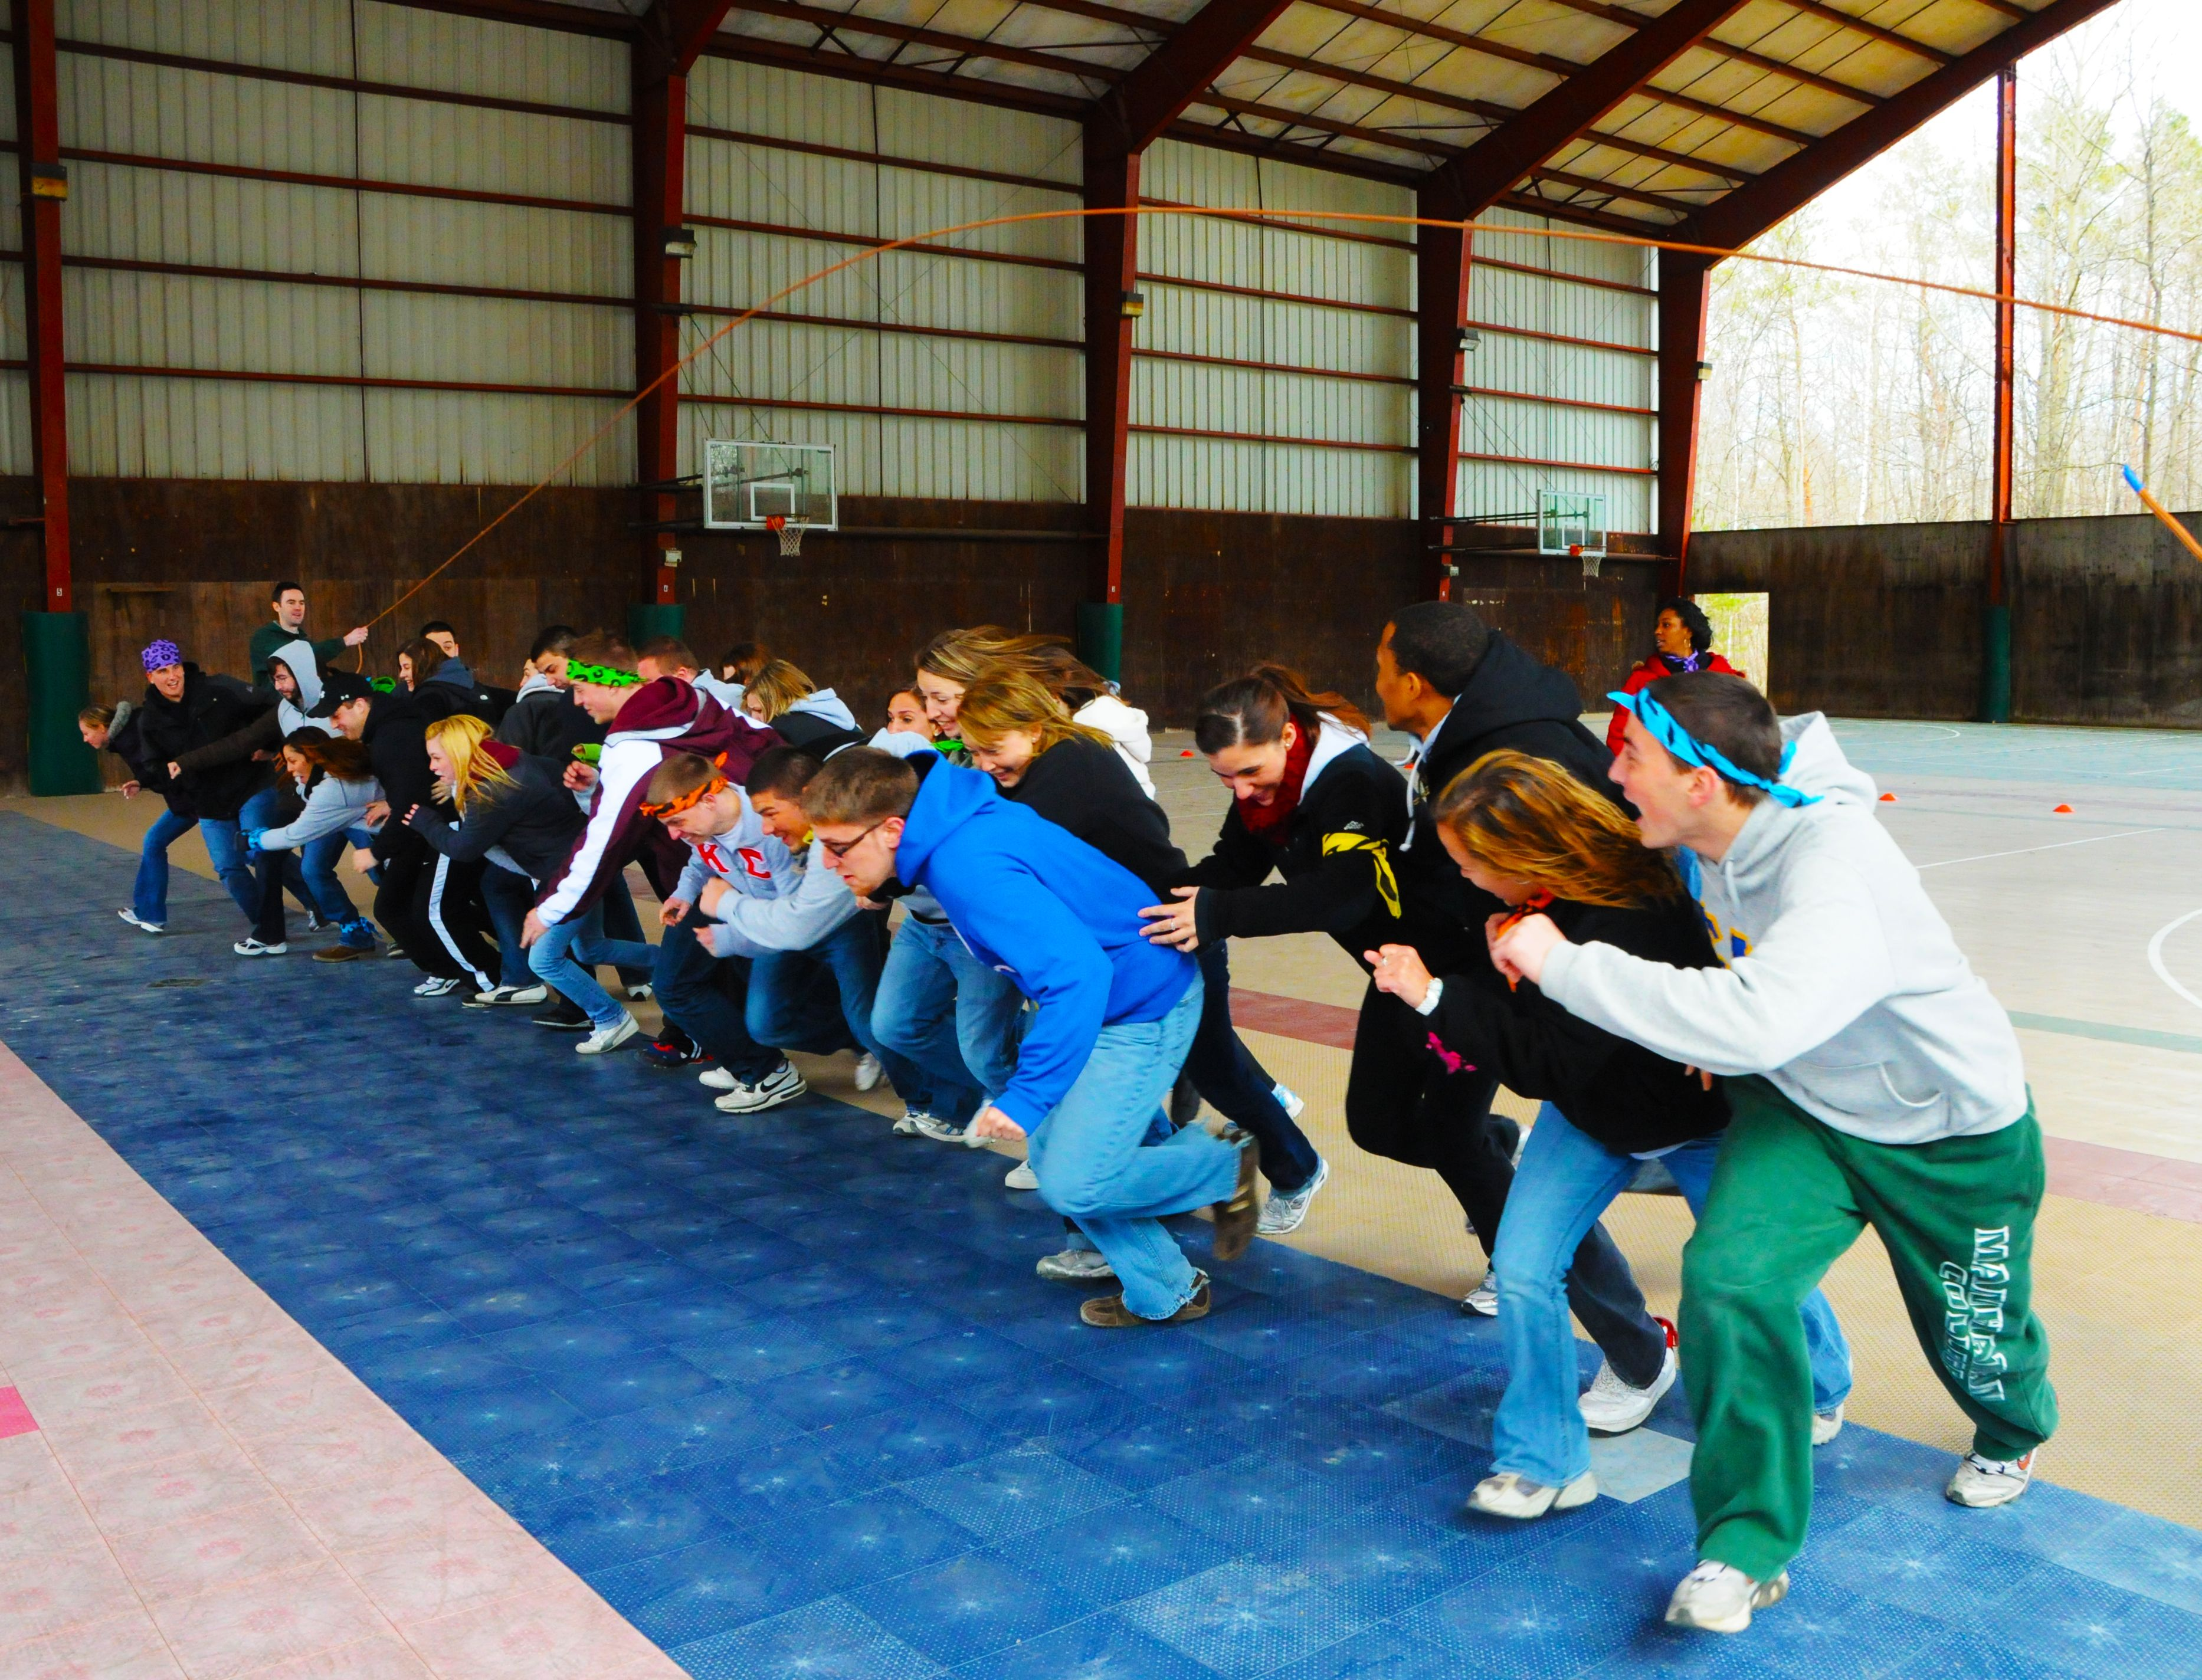 Team Building Activities At Tlr Can Range From Stationary To Very